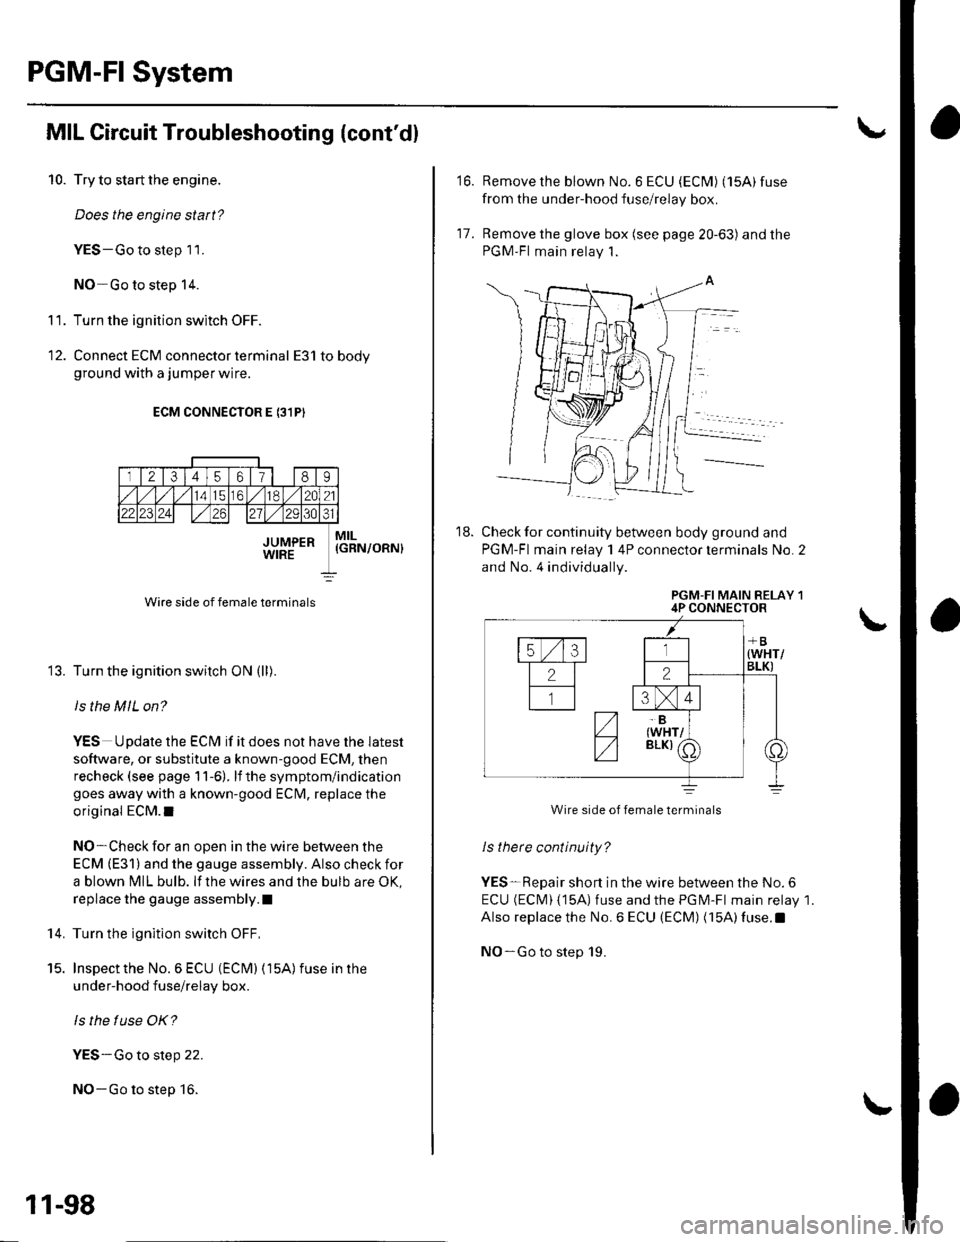 Bulb Honda Civic 2002 7g Workshop Manual Under Hood Fuse Relay Box Page 305